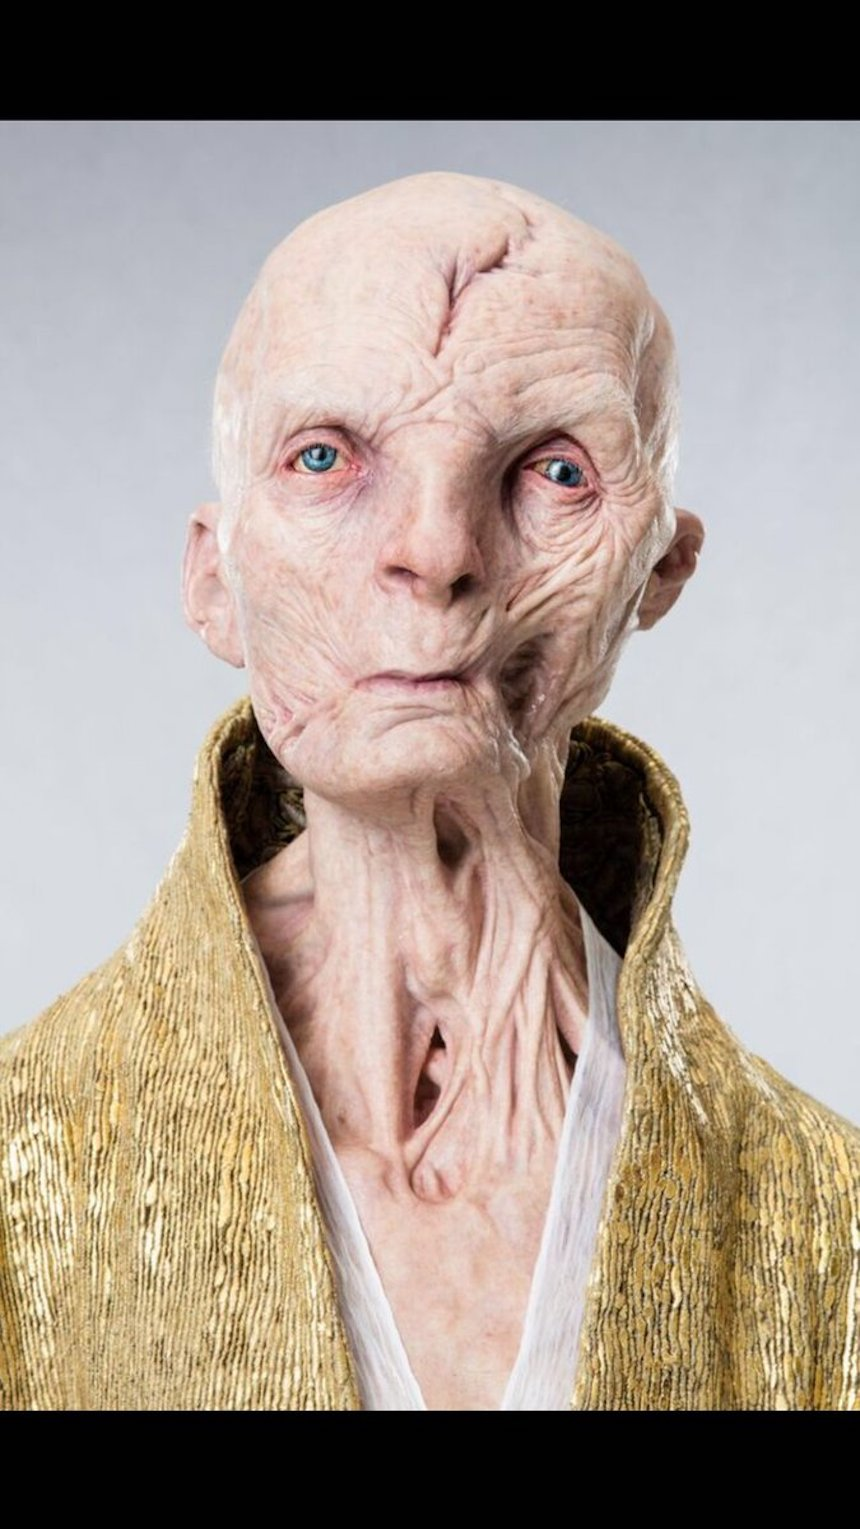 Star Wars: The Last Jedi - Snoke